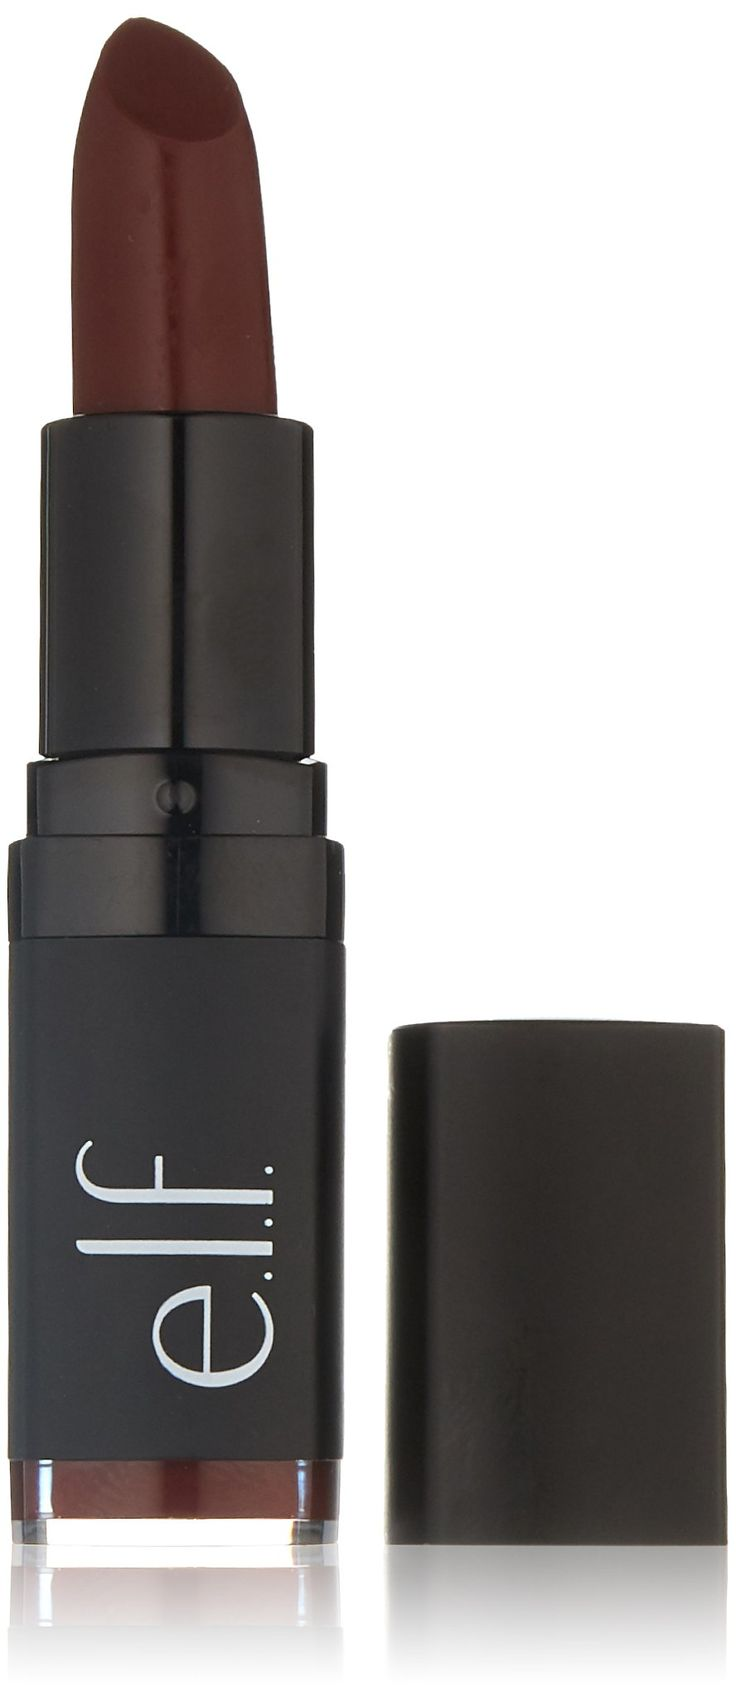 e.l.f. Moisturizing Lipstick, Bordeaux Beauty, 0.11 Ounce (Pack of 9). The rich, creamy formula seals in moisture for long-lasting wear and comfort. Apply to lips as often as needed. Create this seasons best dark lip trend.